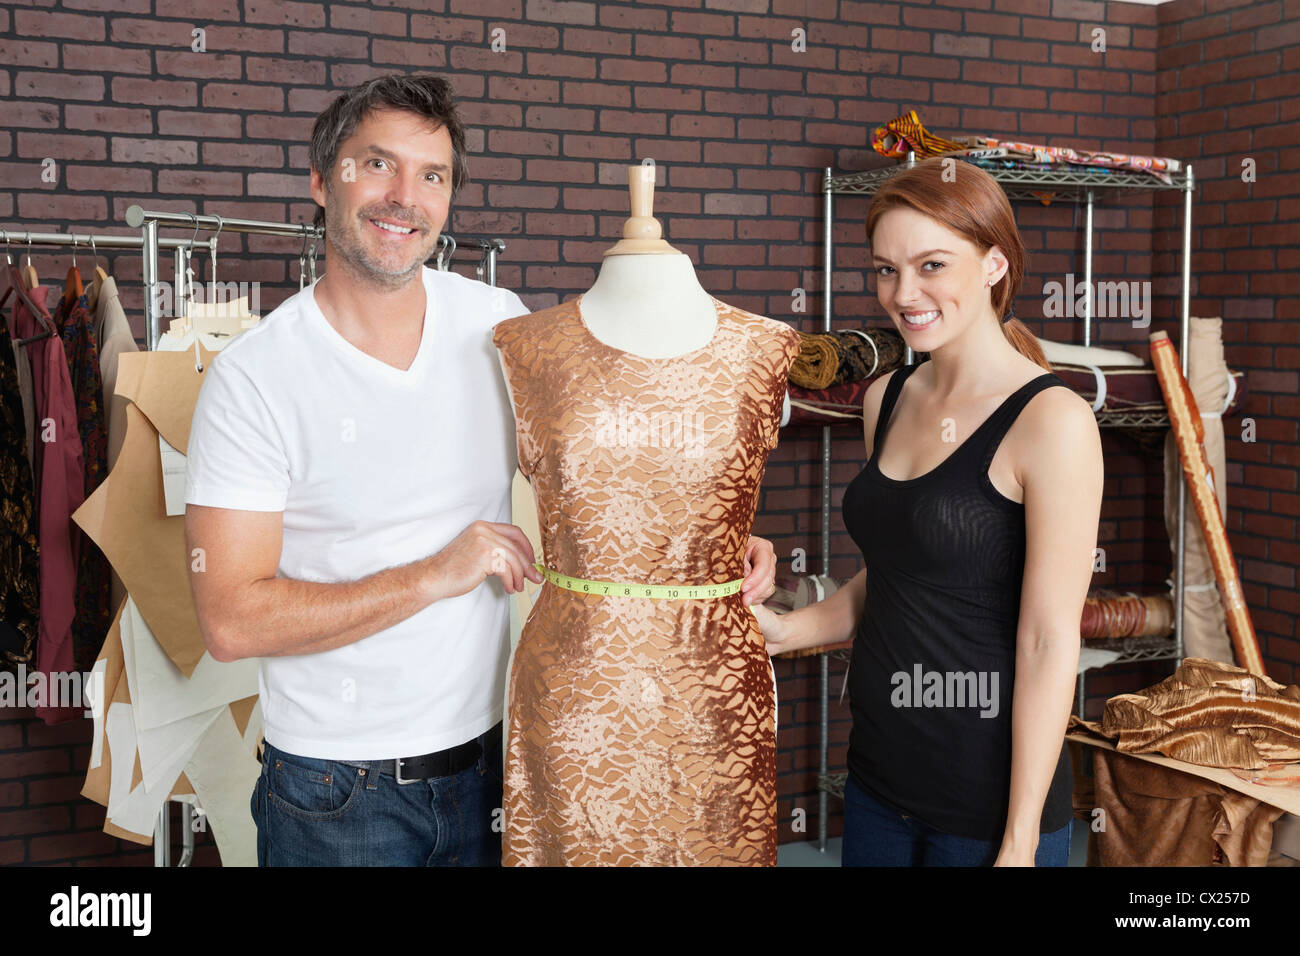 Portrait of fashion designers working together on an outfit in design studio - Stock Image